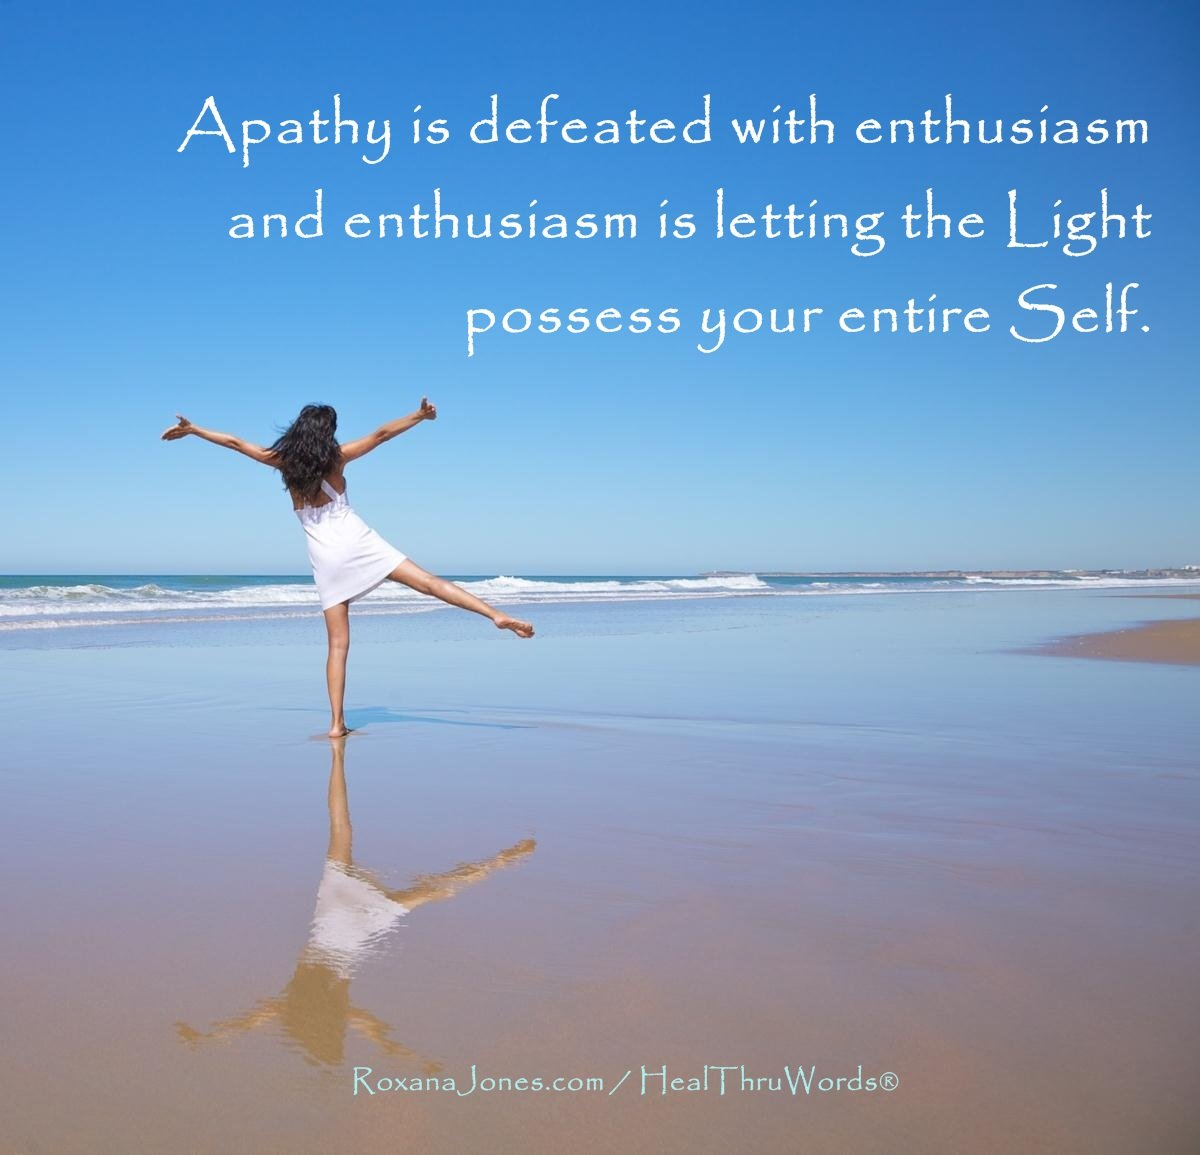 Inspirational Image: Light replaces Apathy